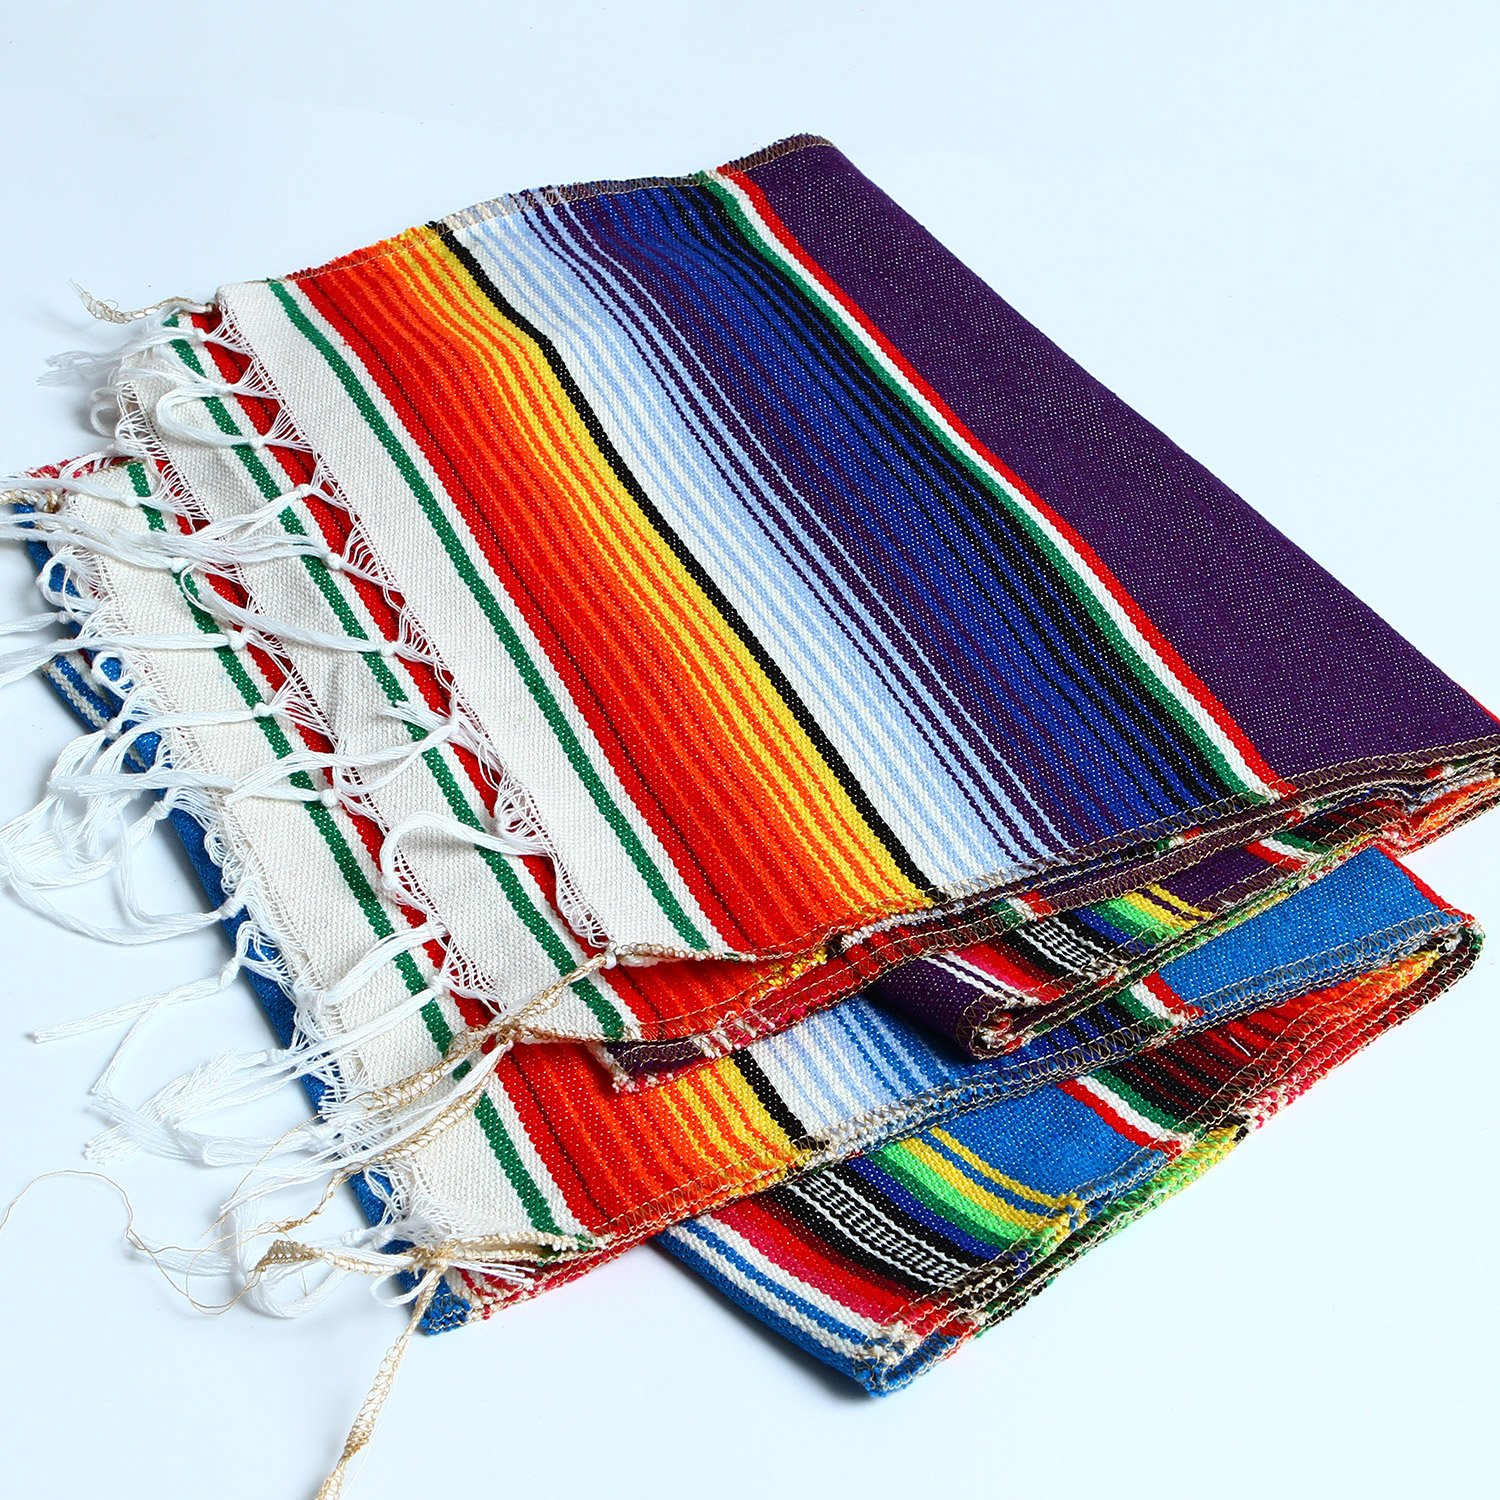 Aneco 2 Pack 14 by 84 Inch Mexican Table Runner Mexican Serape Blanket Cotton Colorful Fringe Table Runners for Mexican Party Wedding Kitchen Outdoor Decorations by Aneco (Image #4)